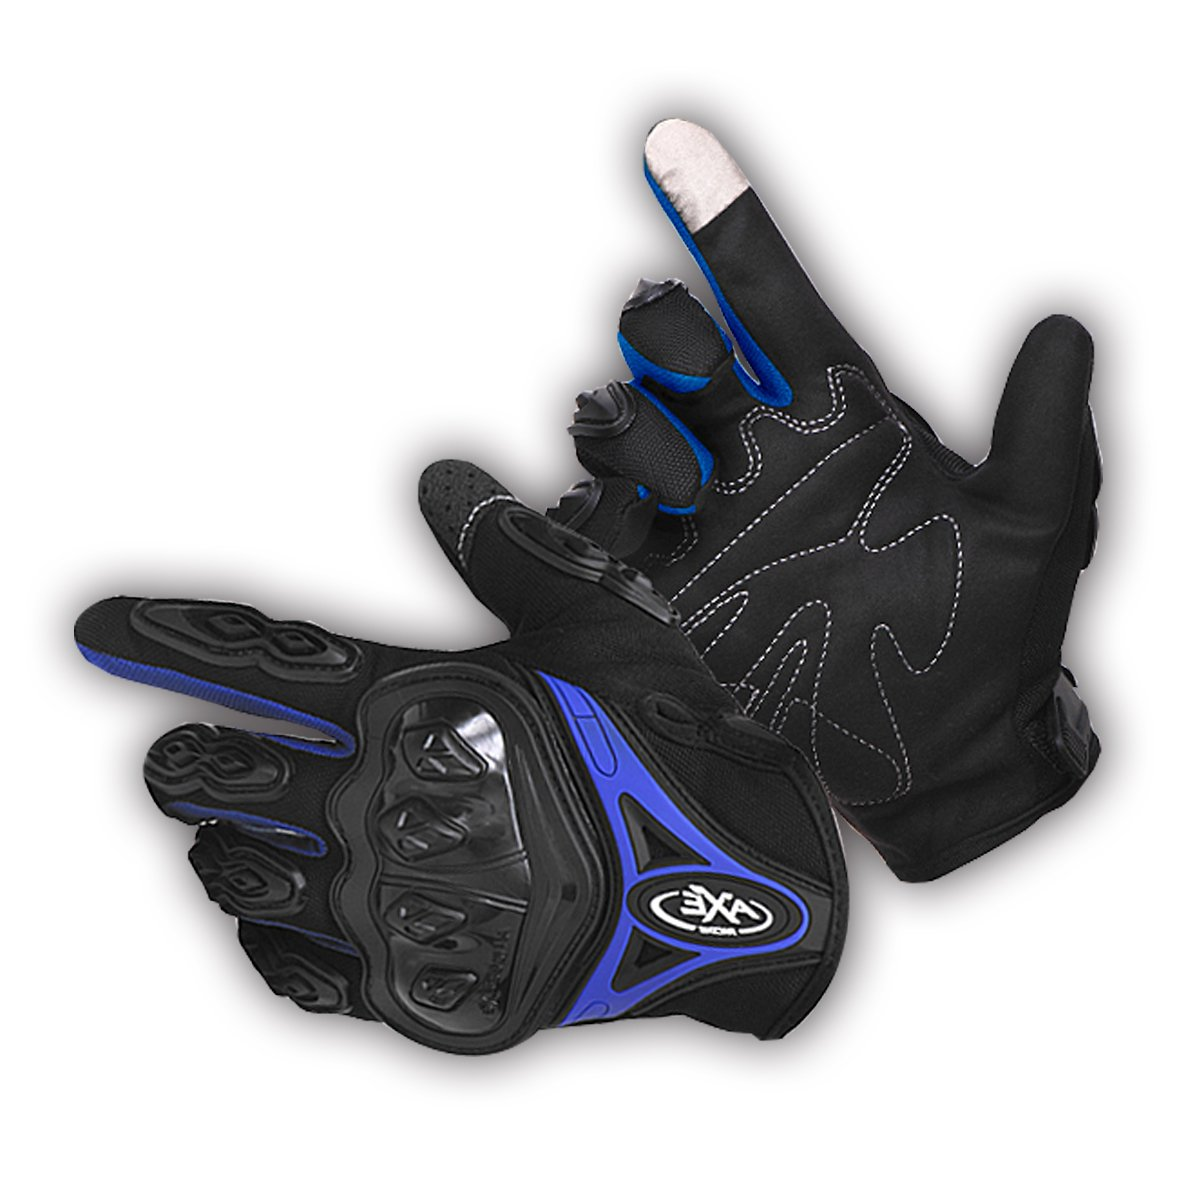 Onway Men & Women Full Finger Motorcycle & Powersports Gloves with Touchscreen Support Protective Gear